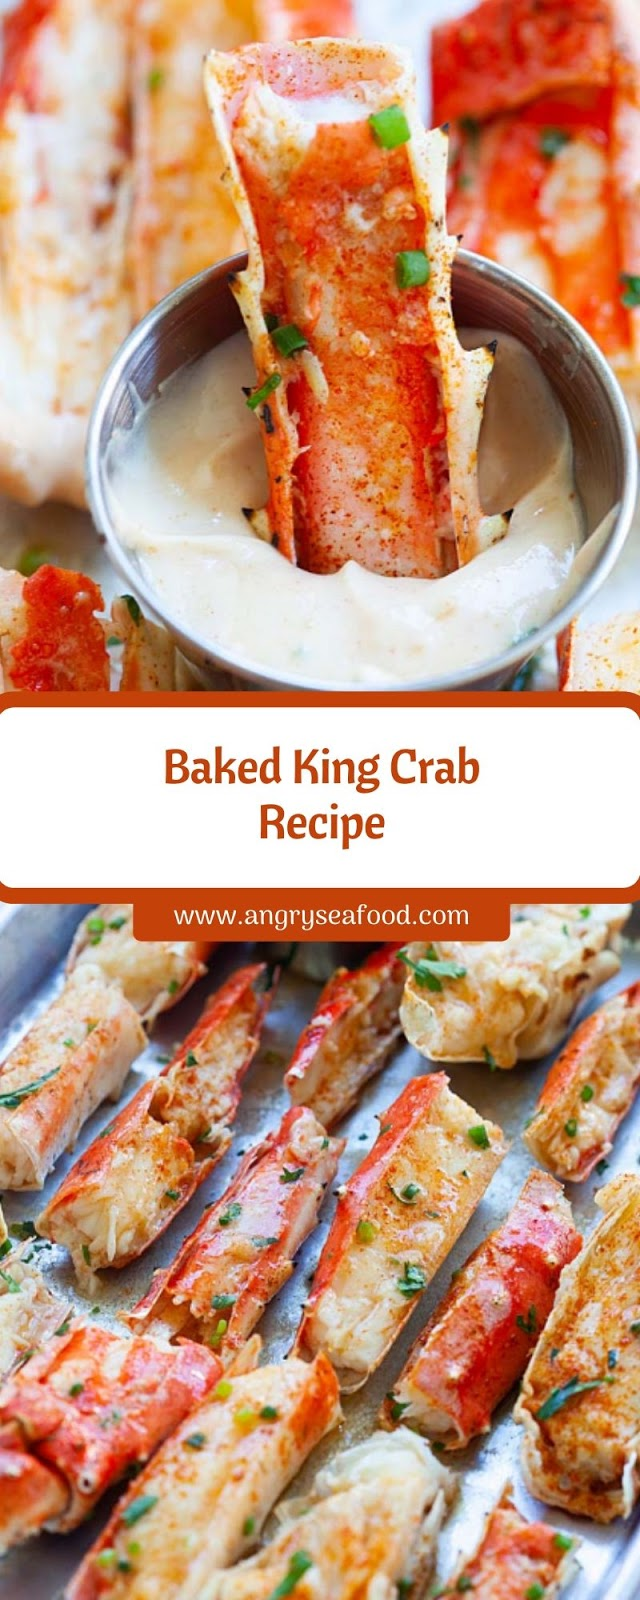 Baked King Crab Recipe